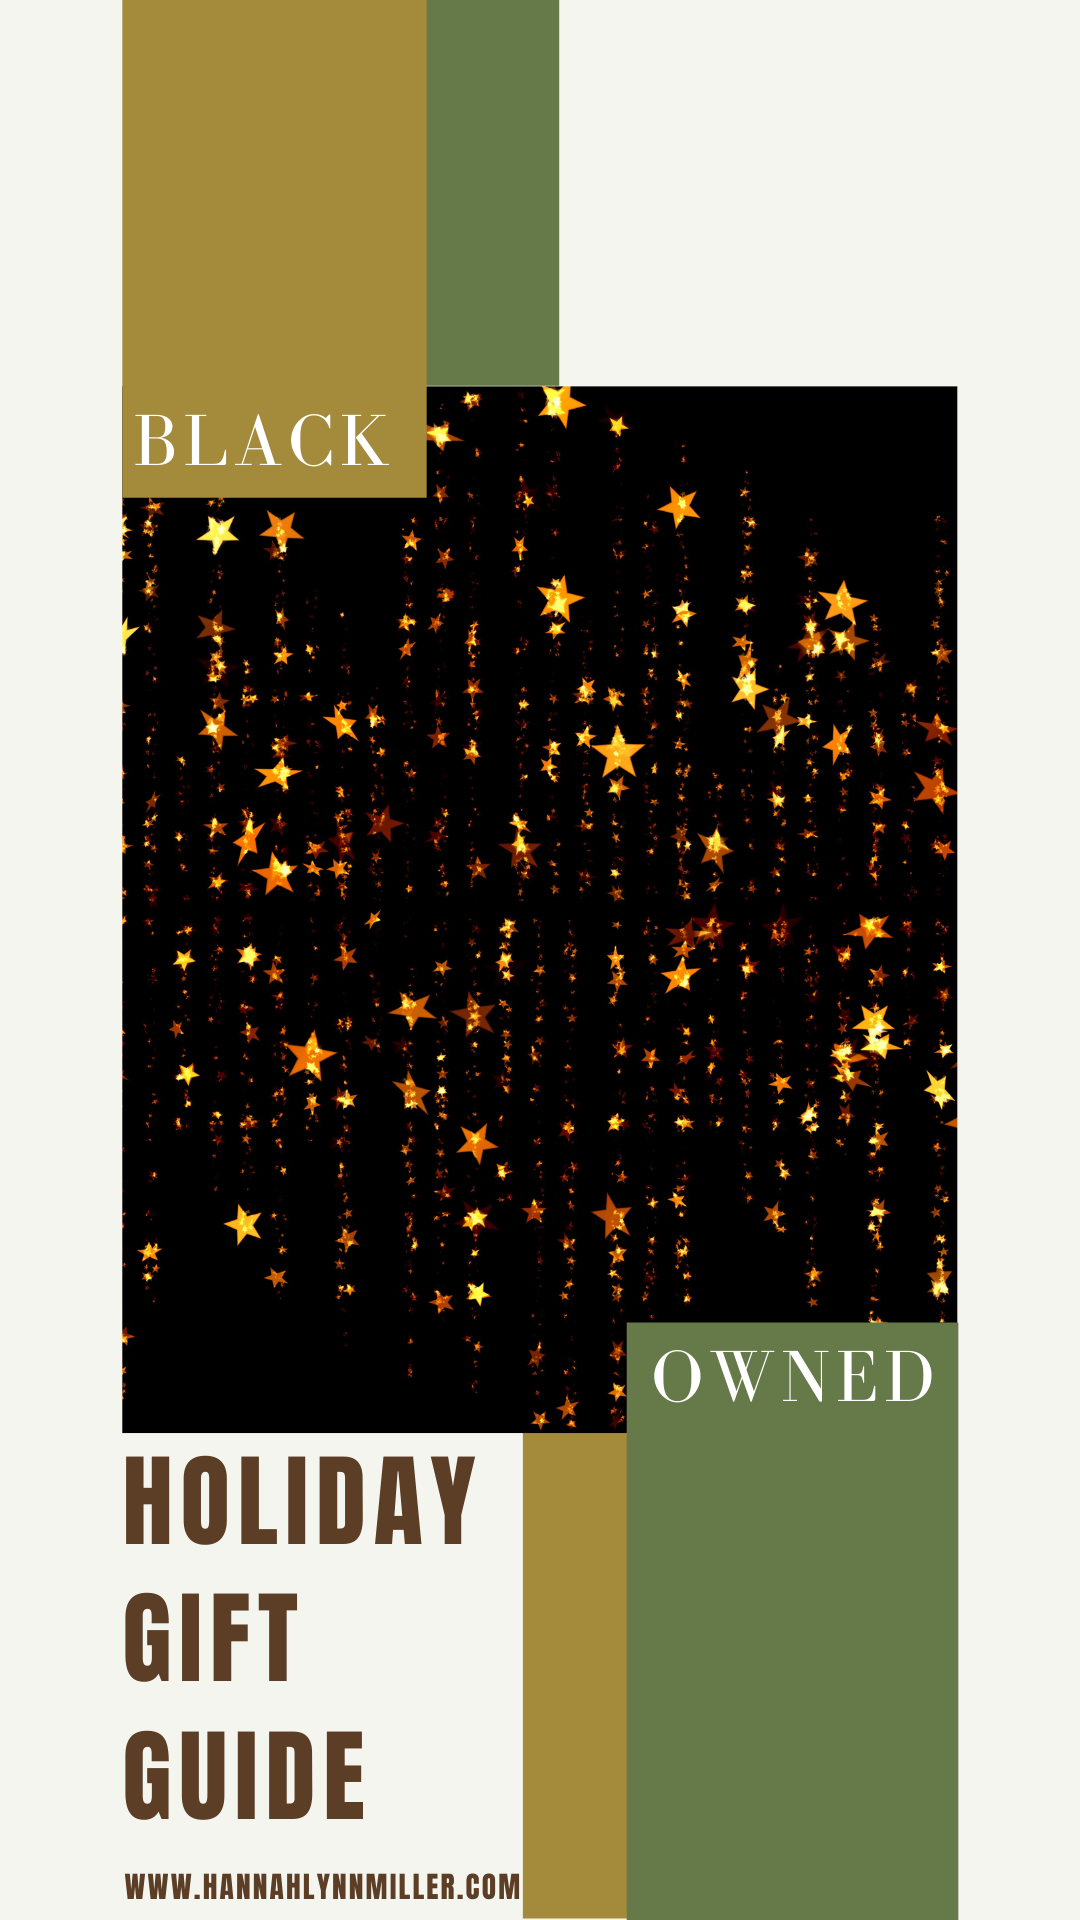 Shop Black-Owned Businesses Holiday Gift Guide